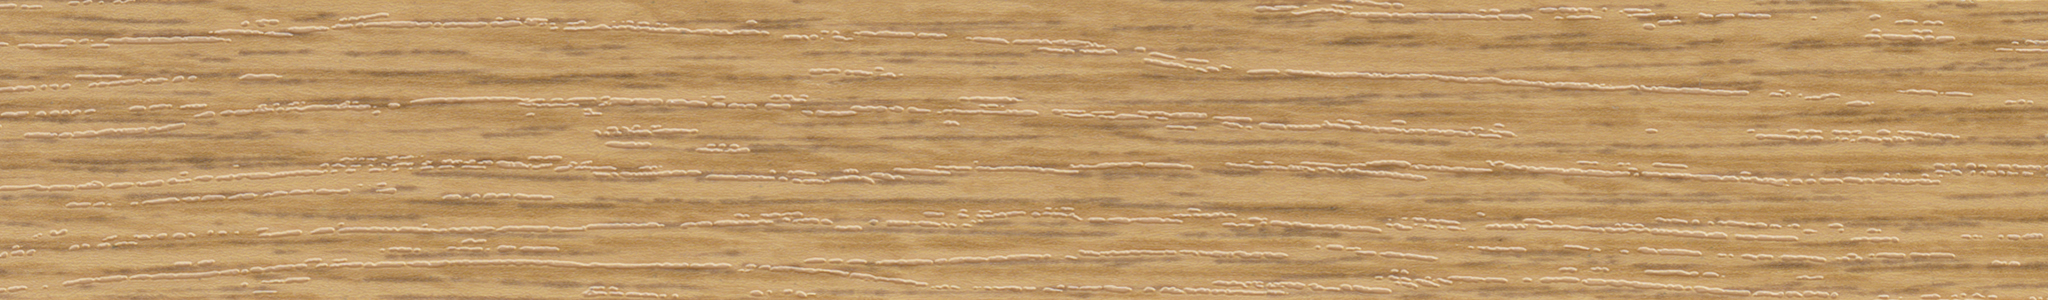 HD 243388 ABS Edge Oak Pore